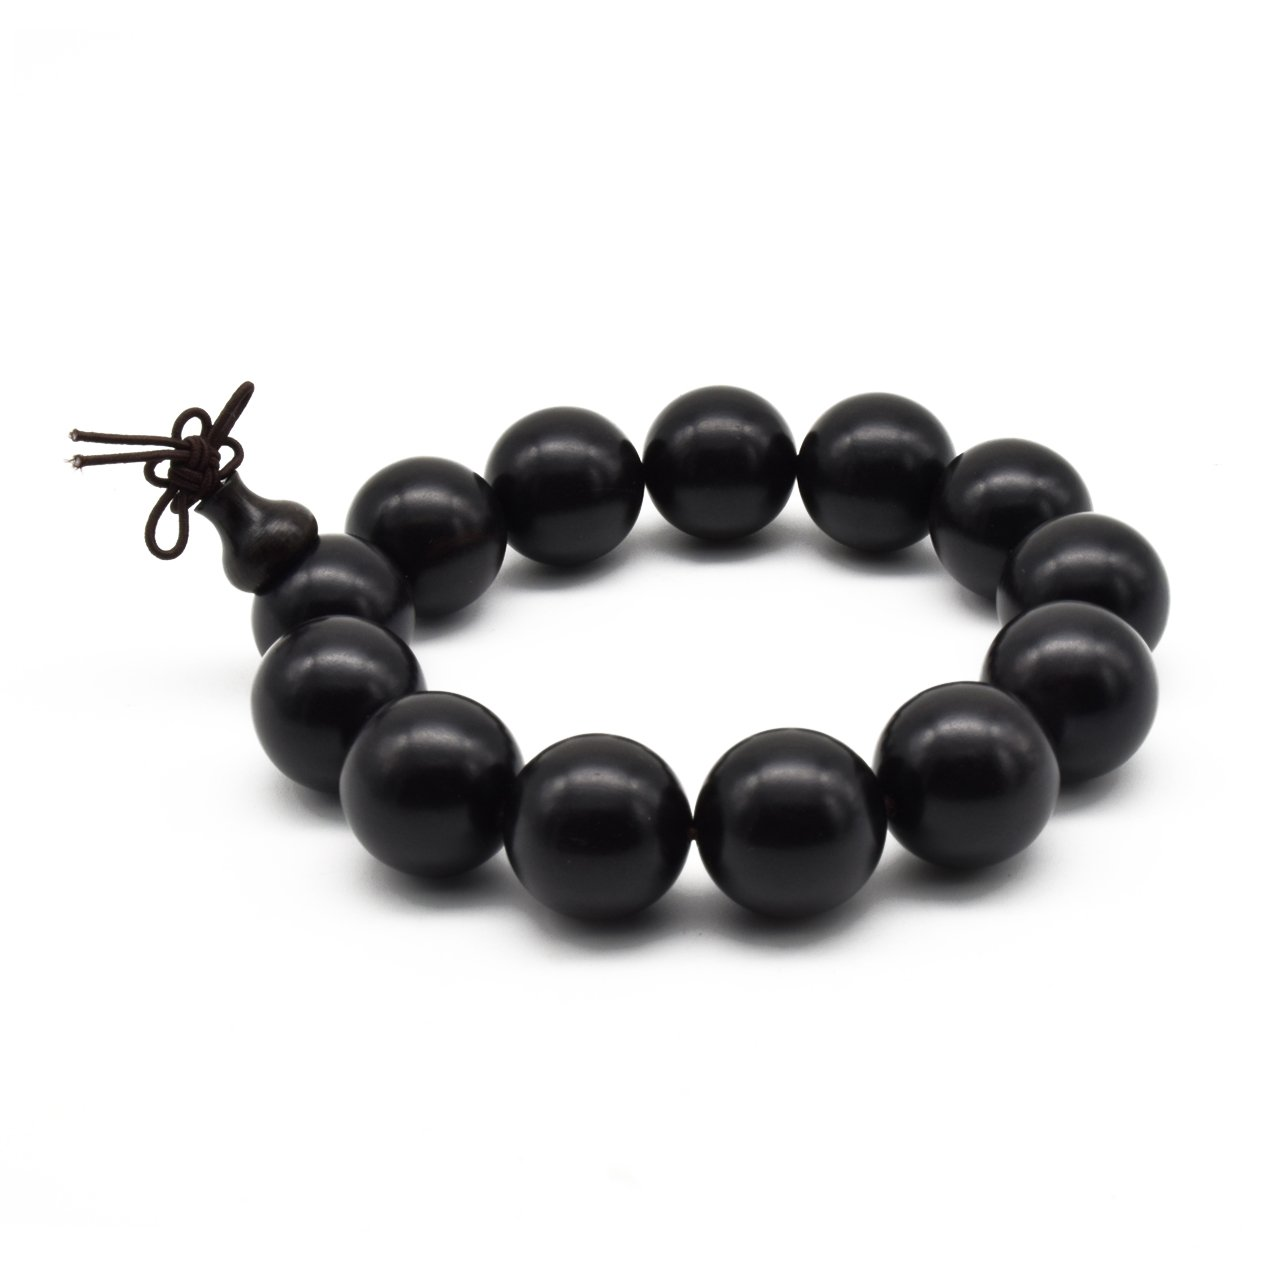 Zen Dear Unisex Natural Ebony Buddhist Prayer Bead Necklace Bracelet Tibetan Prayer Mala Beaded Black ZD-EBW-00-00